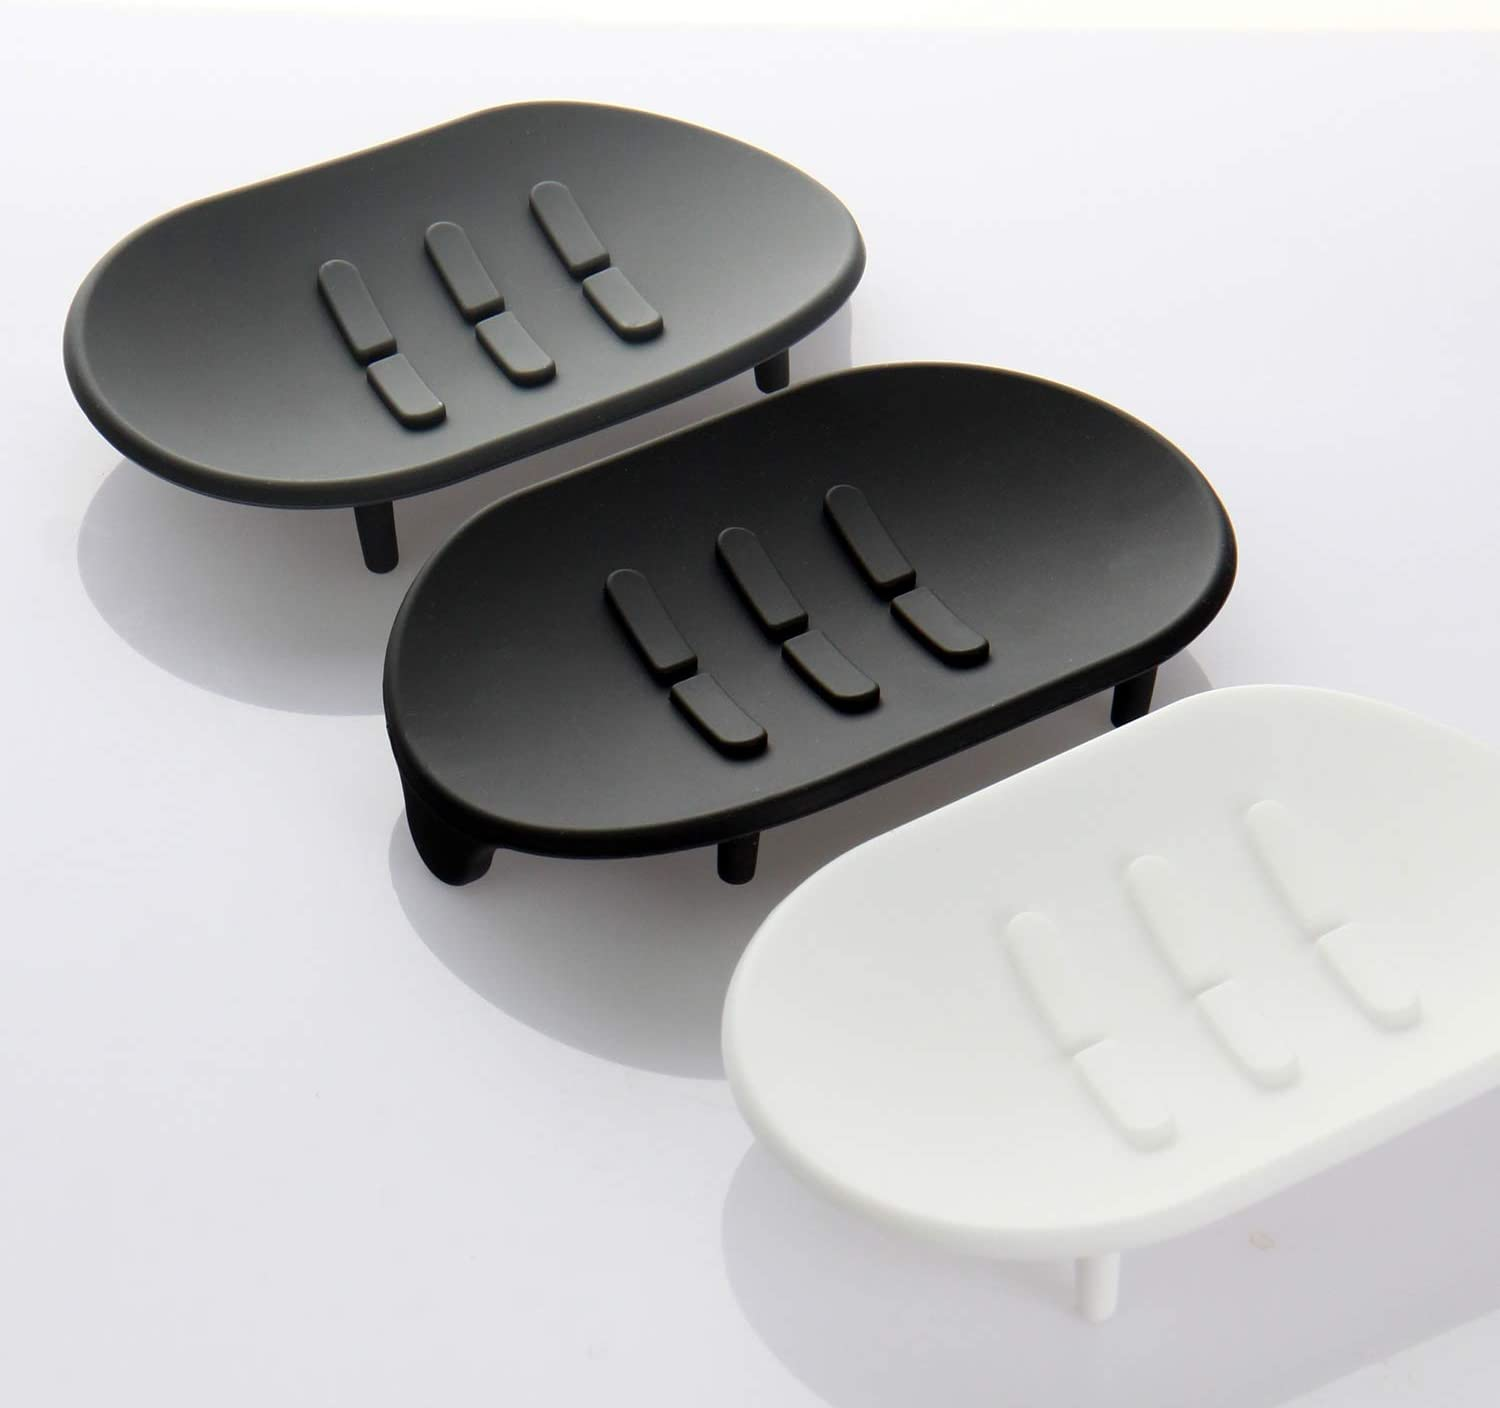 Eco Friendly Toothbrush Holder Compact Set Lazy K Silicone Bathroom Toothbrush//Razor Stand Black- 3 Stands